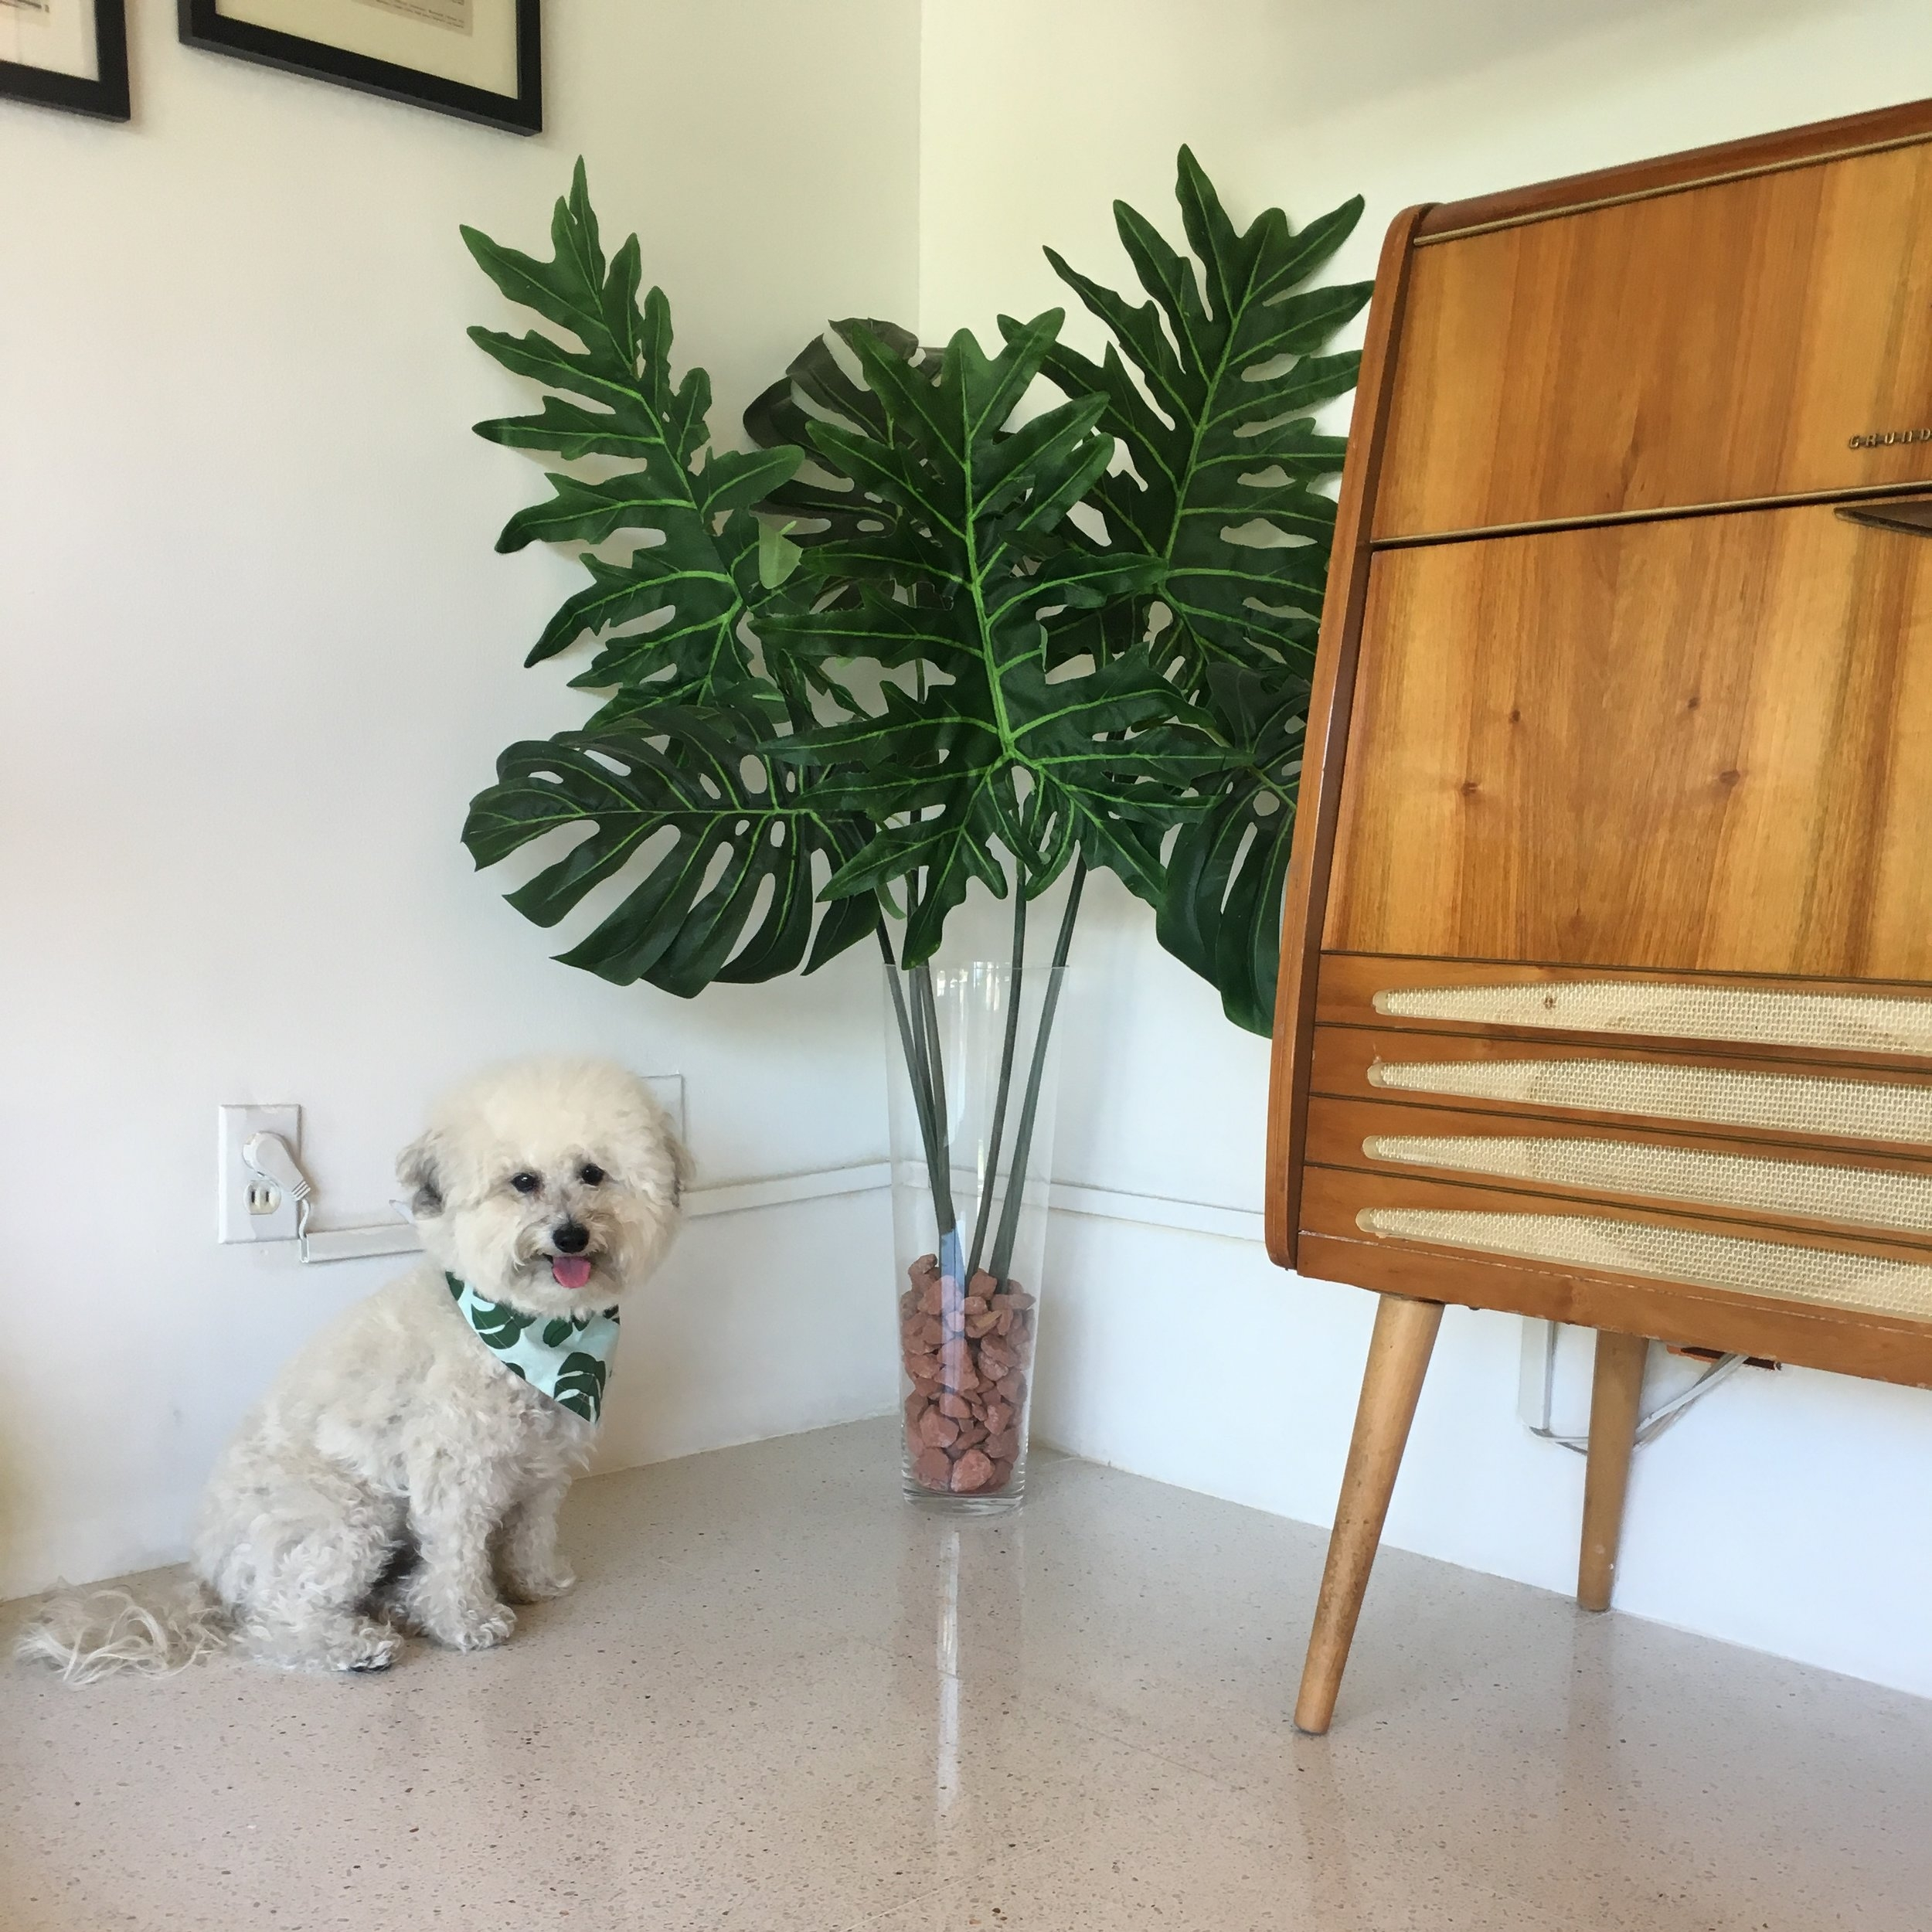 Watson at an Airbnb in Palm Springs, California | Watson & Walls